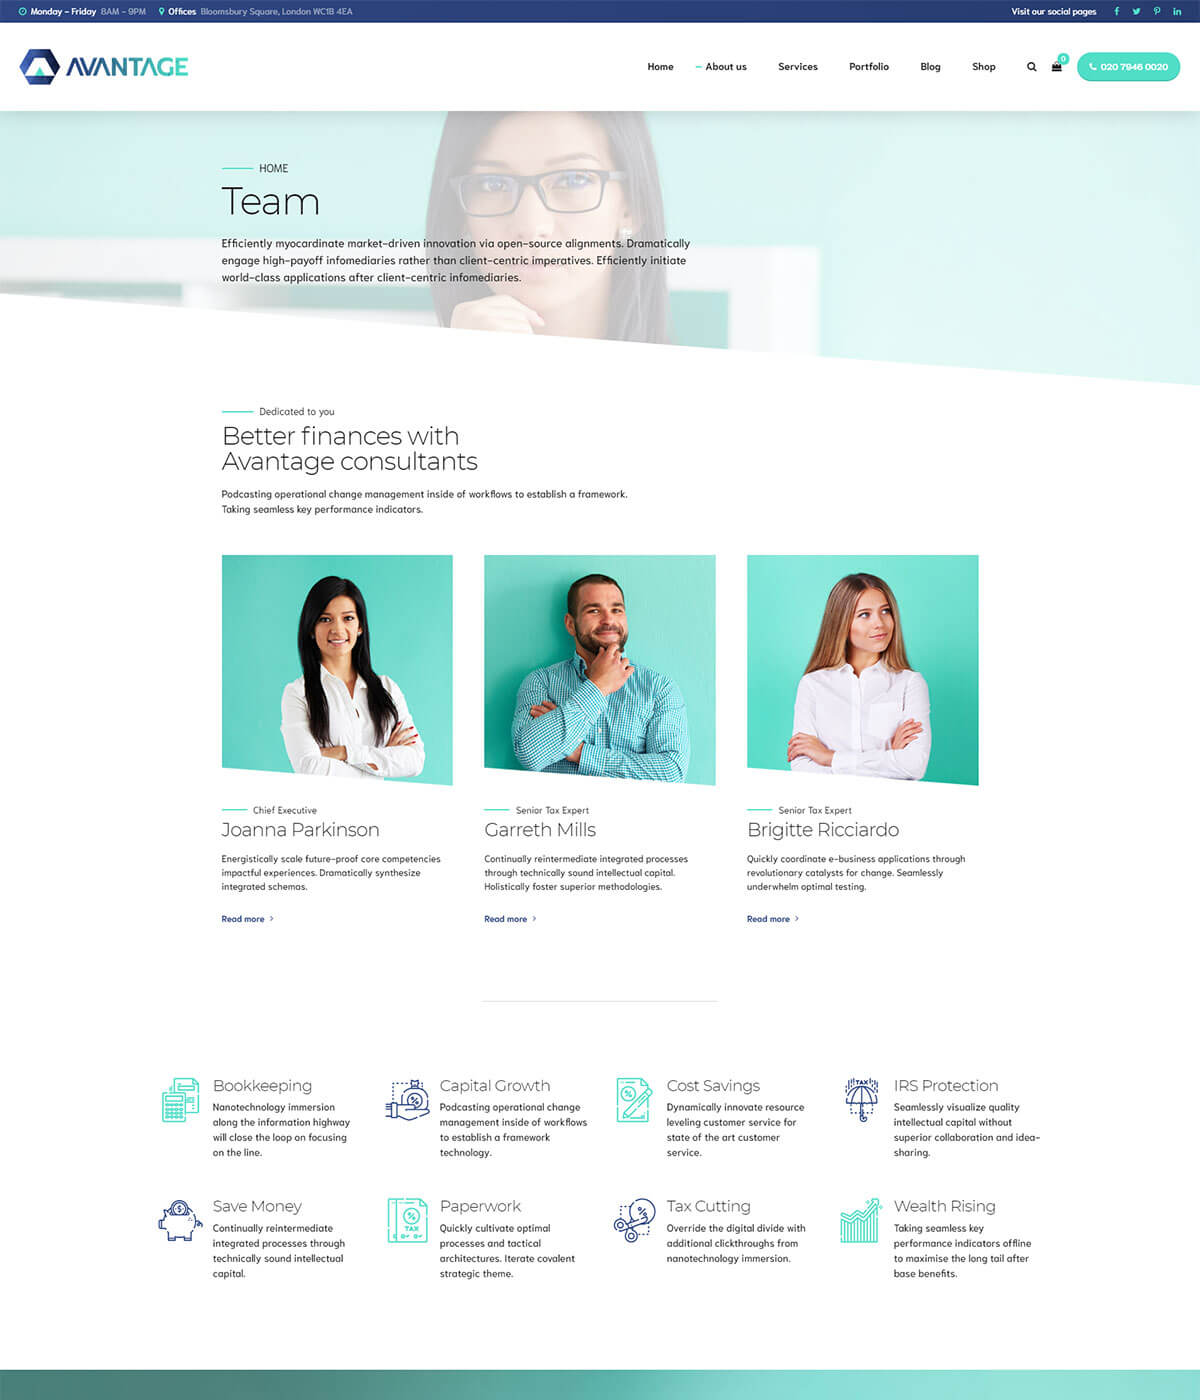 https://avantage.bold-themes.com/wp-content/uploads/2019/05/accountant-03-team.jpg